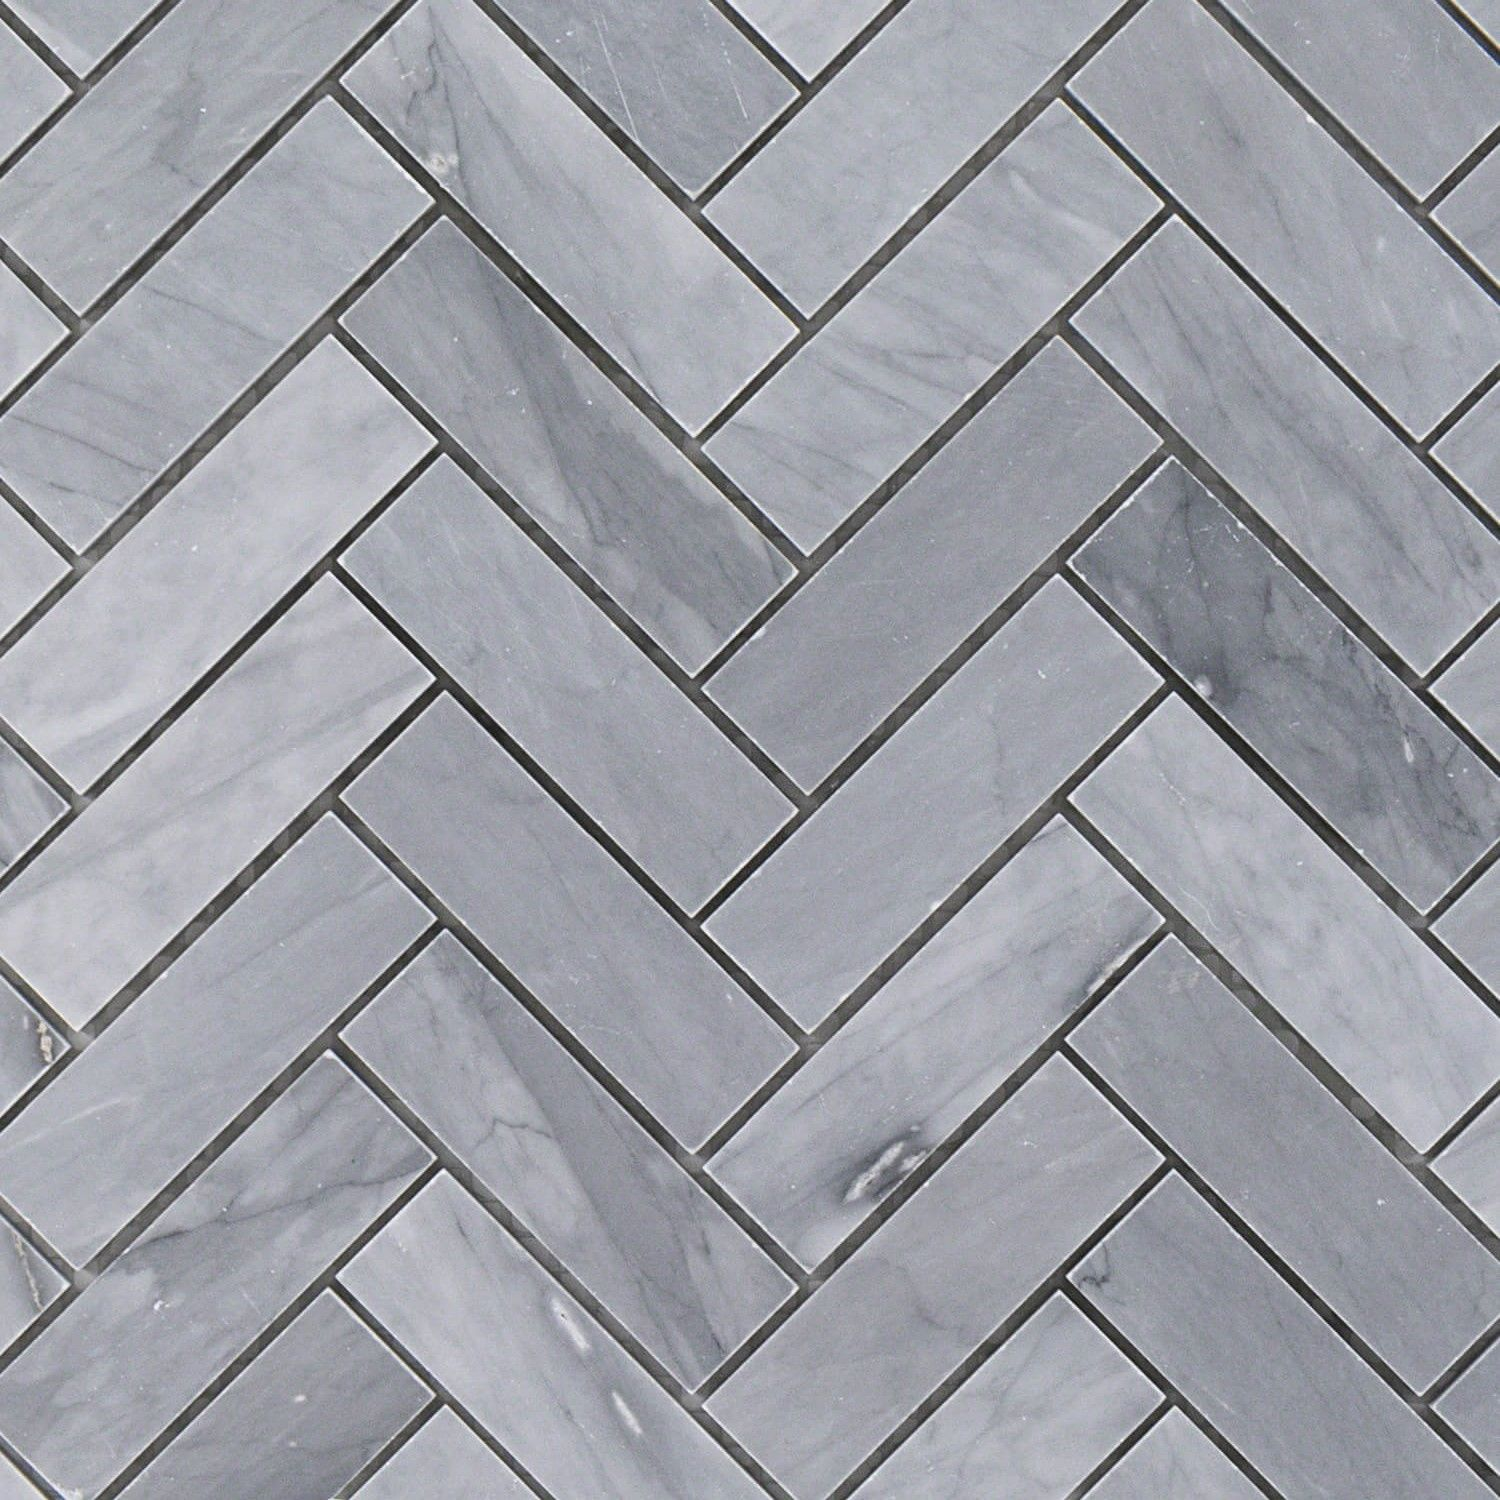 Gray Marble Herringbone Tile 1x3 Halley Gray Tilebar